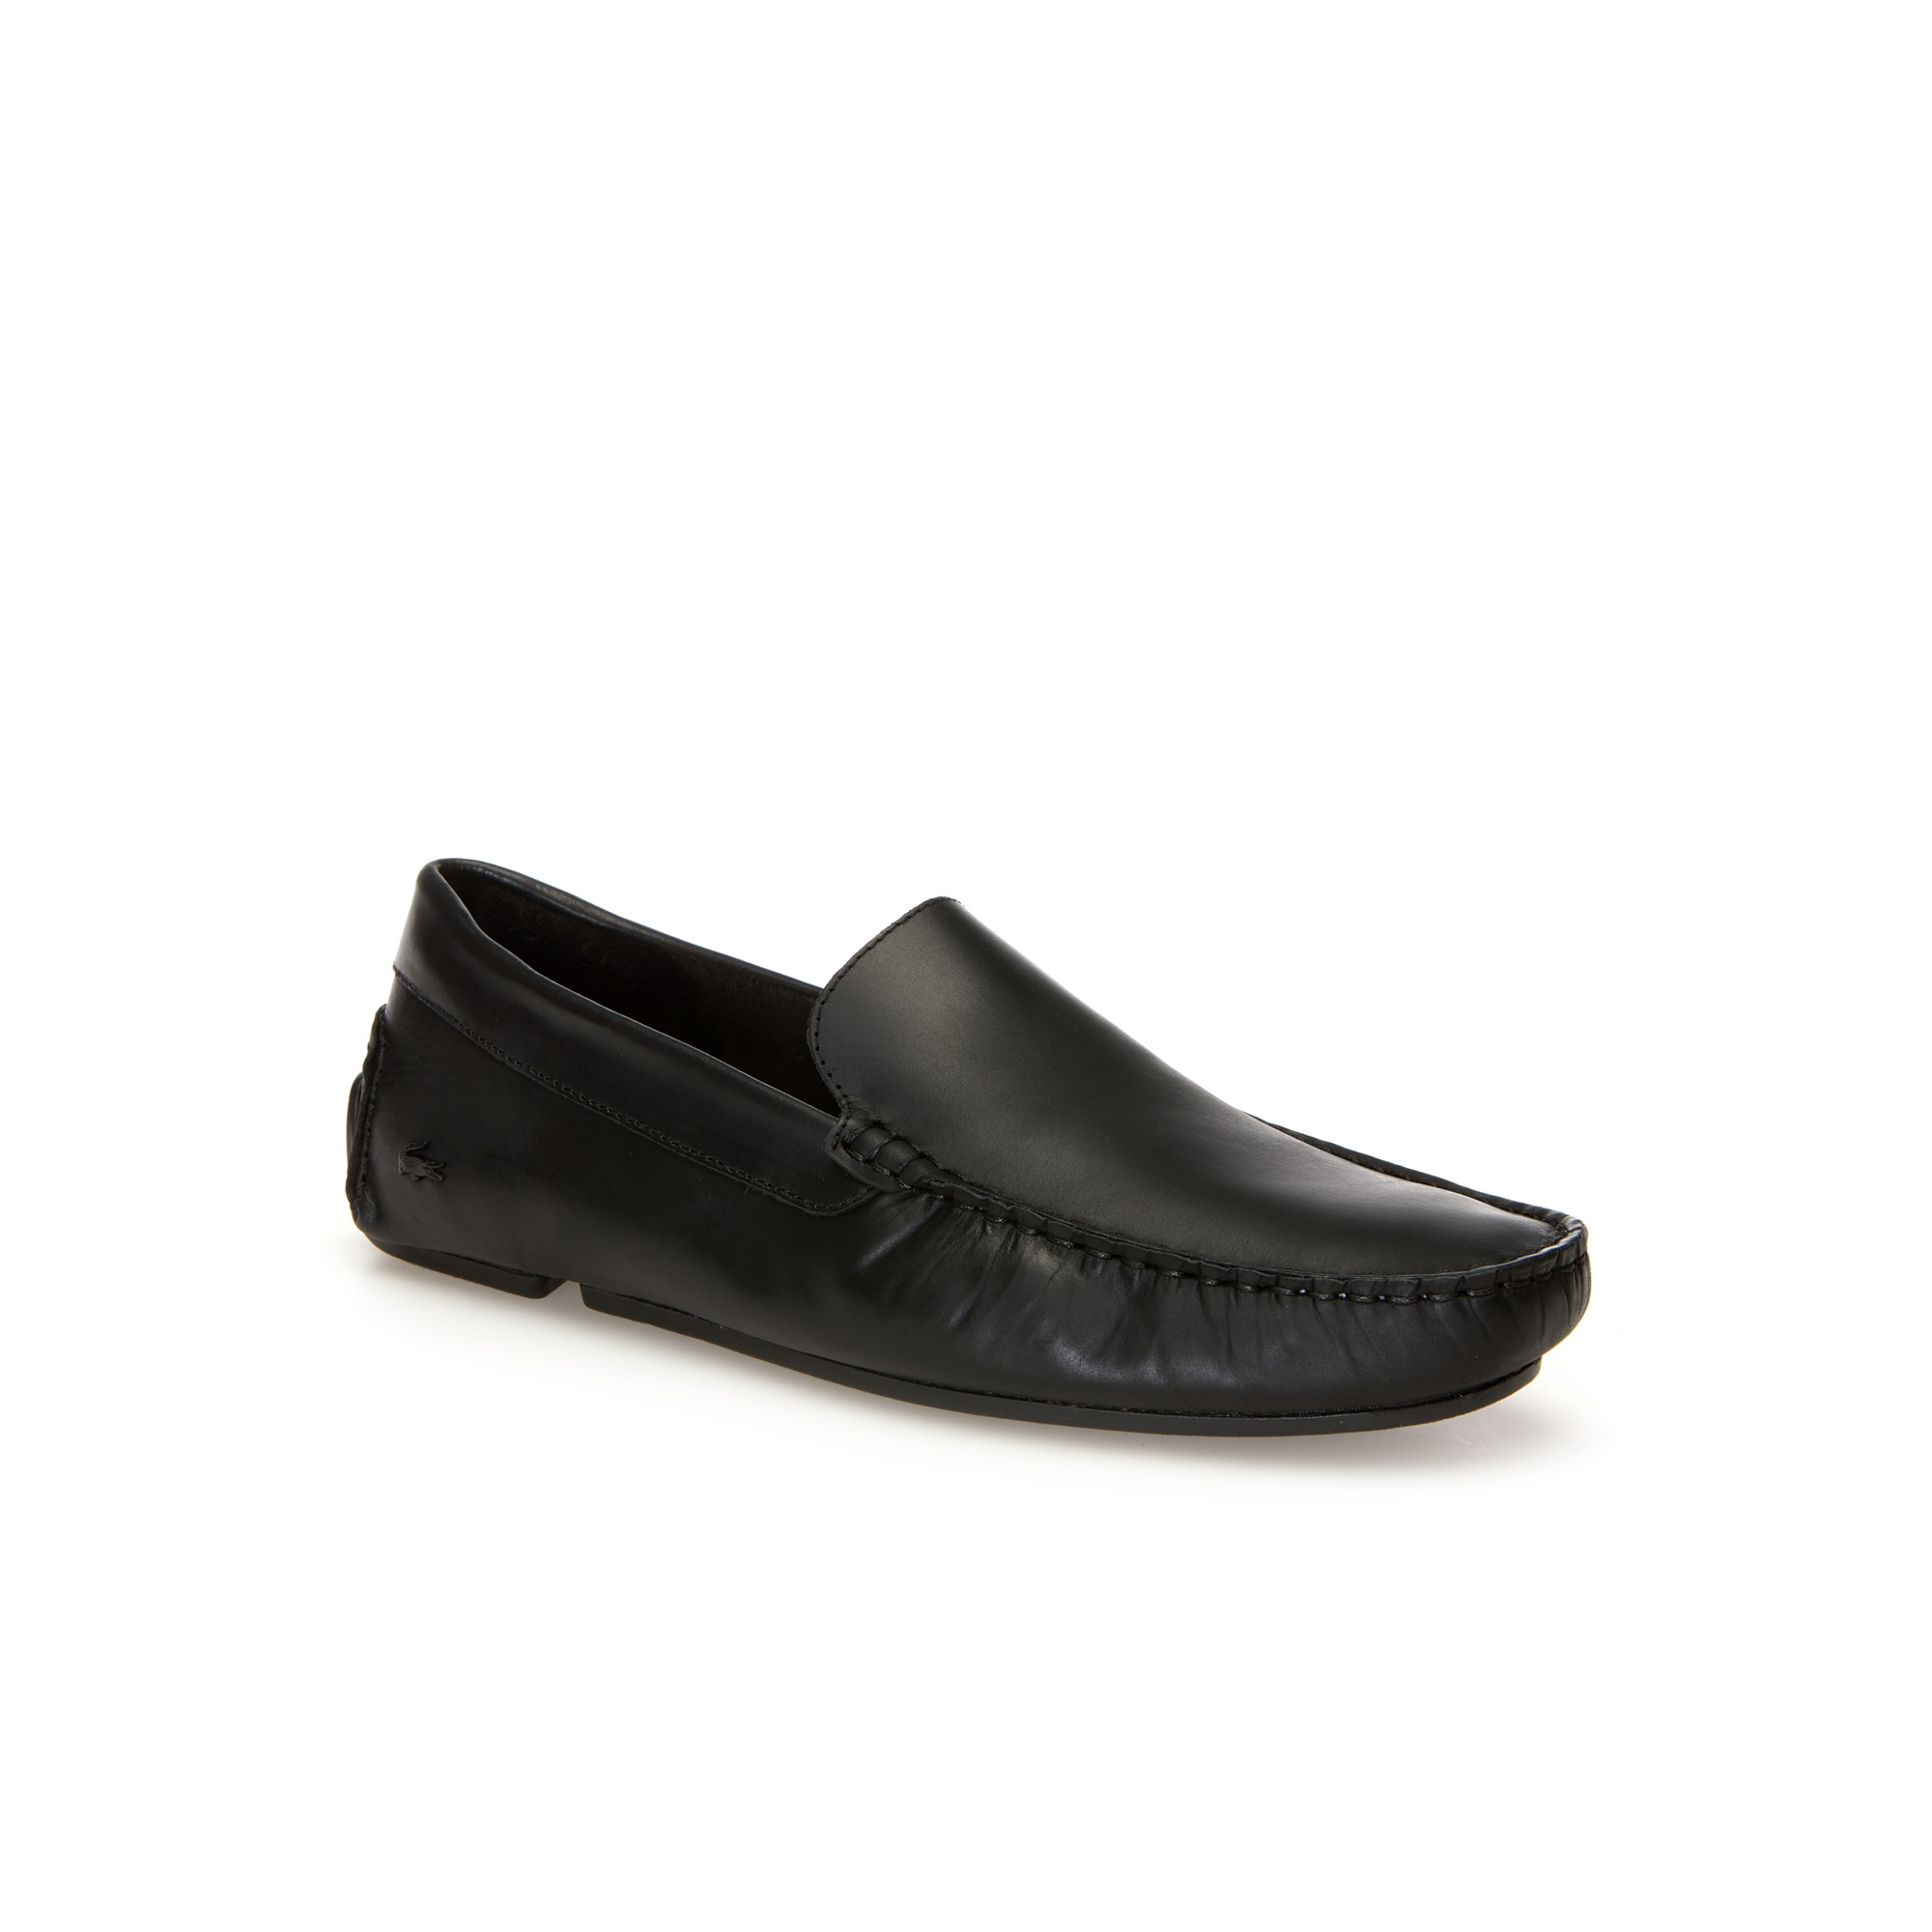 라코스테 모카신 Lacoste Mens Piloter Leather Moccasins,blk